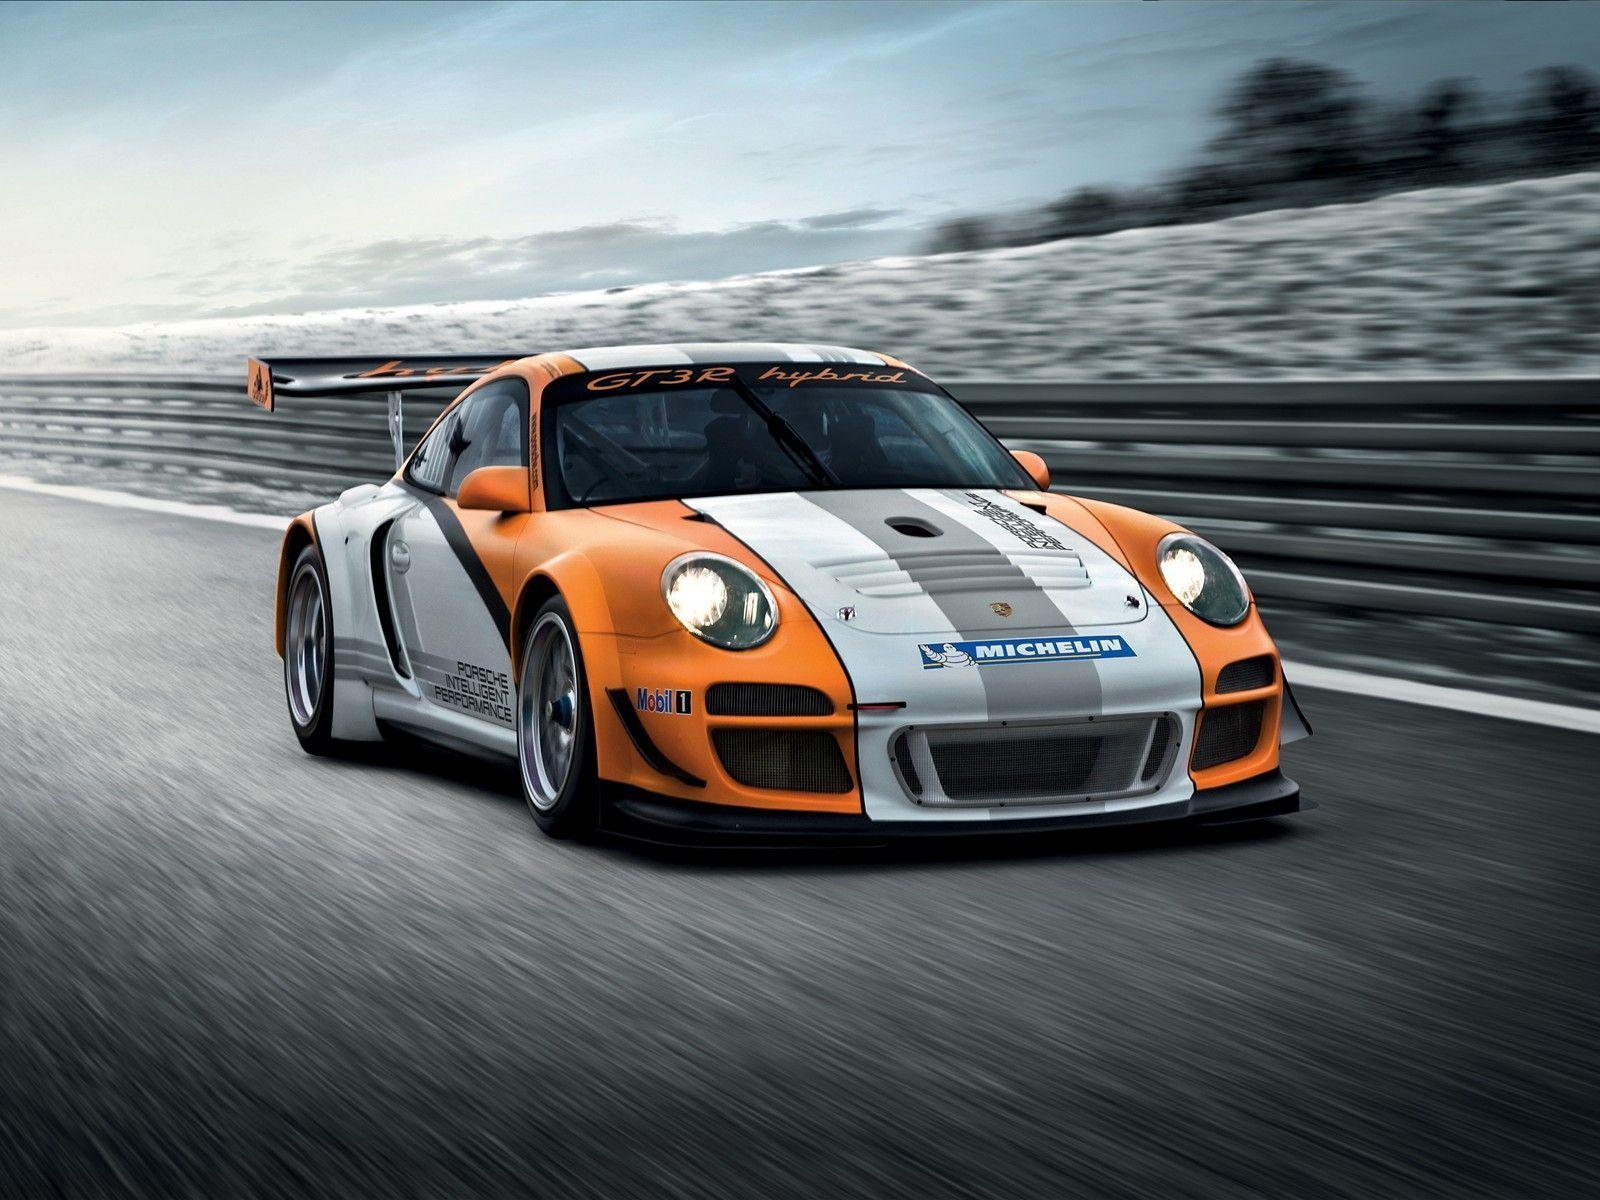 Porsche hd wallpapers ›› Page 0